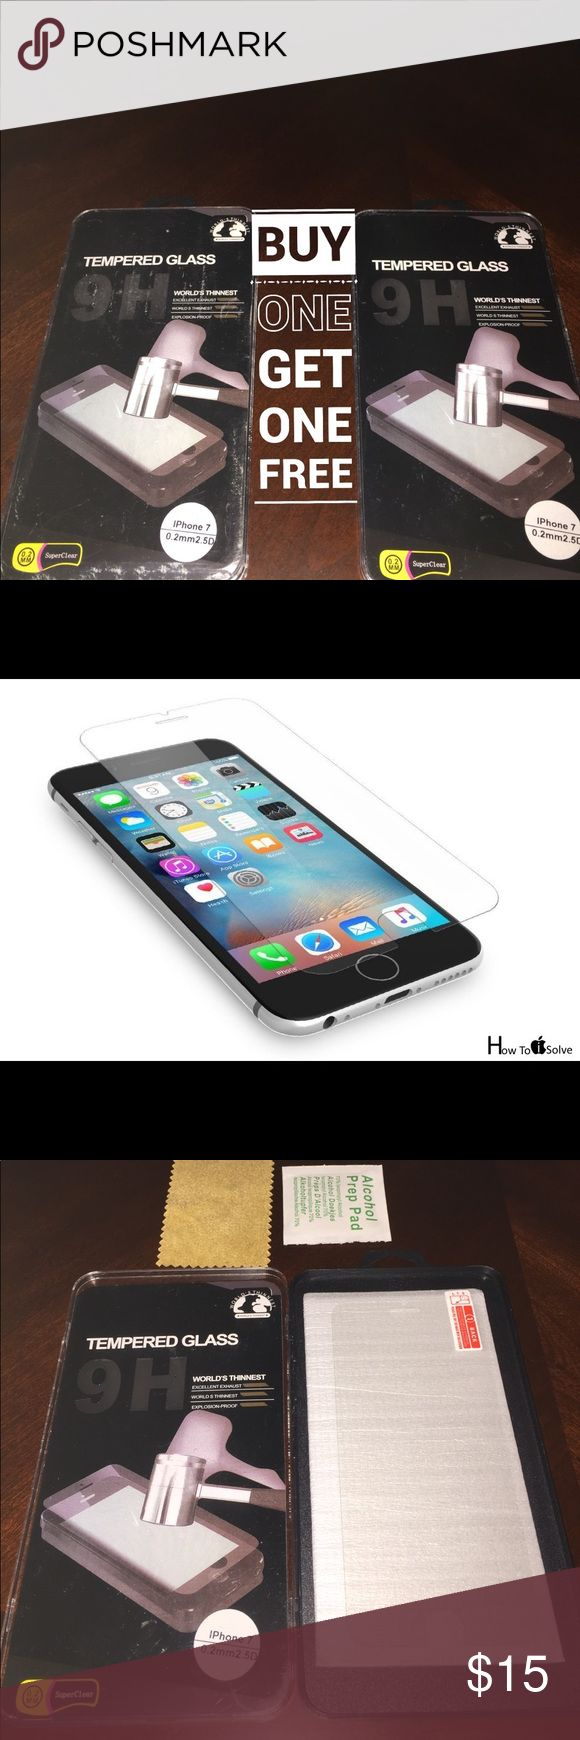 2x Tempered Glass for iPhone 7 Package Includes:  ➜ 2x Tempered Glass for iPhone 7  Specification ➜ Material: Tempered glass ➜ Hardness: 9H ➜ Thickness: 0.33mm ➜ Curve: 2.5D Smooth Edge ➜ Clarity: 100% clear Features: ➜ Tempered Glass Anti-scratch (Hardness: 9H),0.37~0.4mm,2.5D Rounded Edges ➜ Light Penetration Ratio 93.7% (Comparison: Glasses 92%, General protective film 80%) ➜ Anti-Fingerprint and Oleophobic Coated, Ultra Slim Thickness, Anti-Shatter Film, Sensitive Touch and Bubble Free…